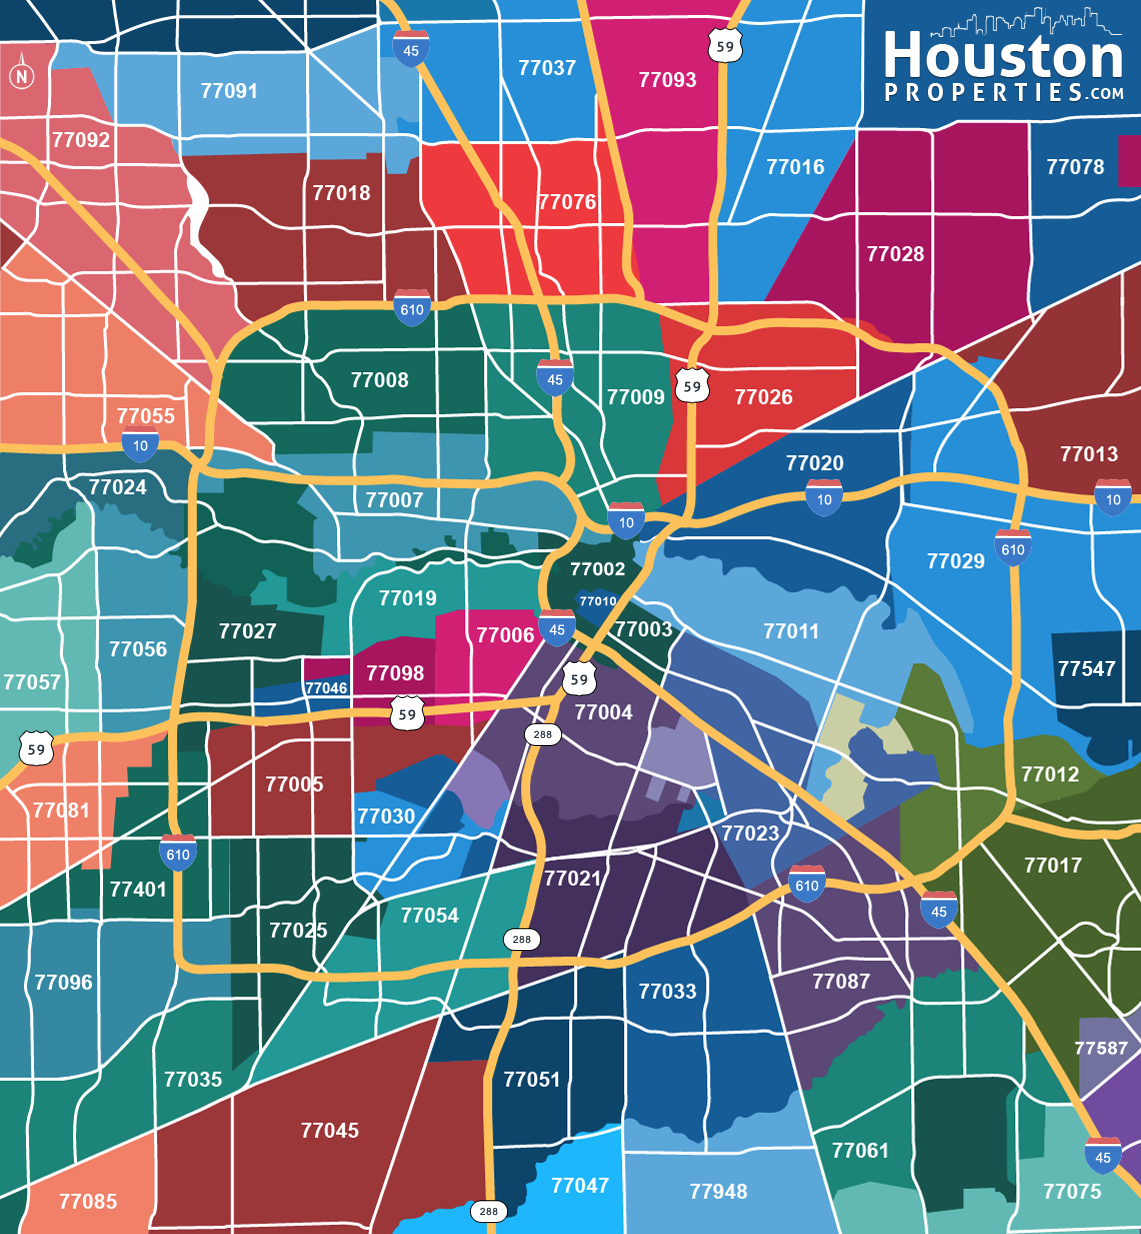 Houston Zip Code Map | Great Maps Of Houston in 2019 | Houston ... on map of va houston tx, mls area map houston tx, restaurants houston tx, zip codes for south texas, hotels houston tx, homestead houston tx, zip codes in houston, zip codes austin tx, home houston tx, highway map of houston tx, city of houston tx, zip codes by city name, map texa houston tx, island elementary school houston tx, texas postal zip codes tx, zip code los angeles district maps, elevation map houston tx, kingwood houston tx, area code map houston tx, map of texas college station tx,